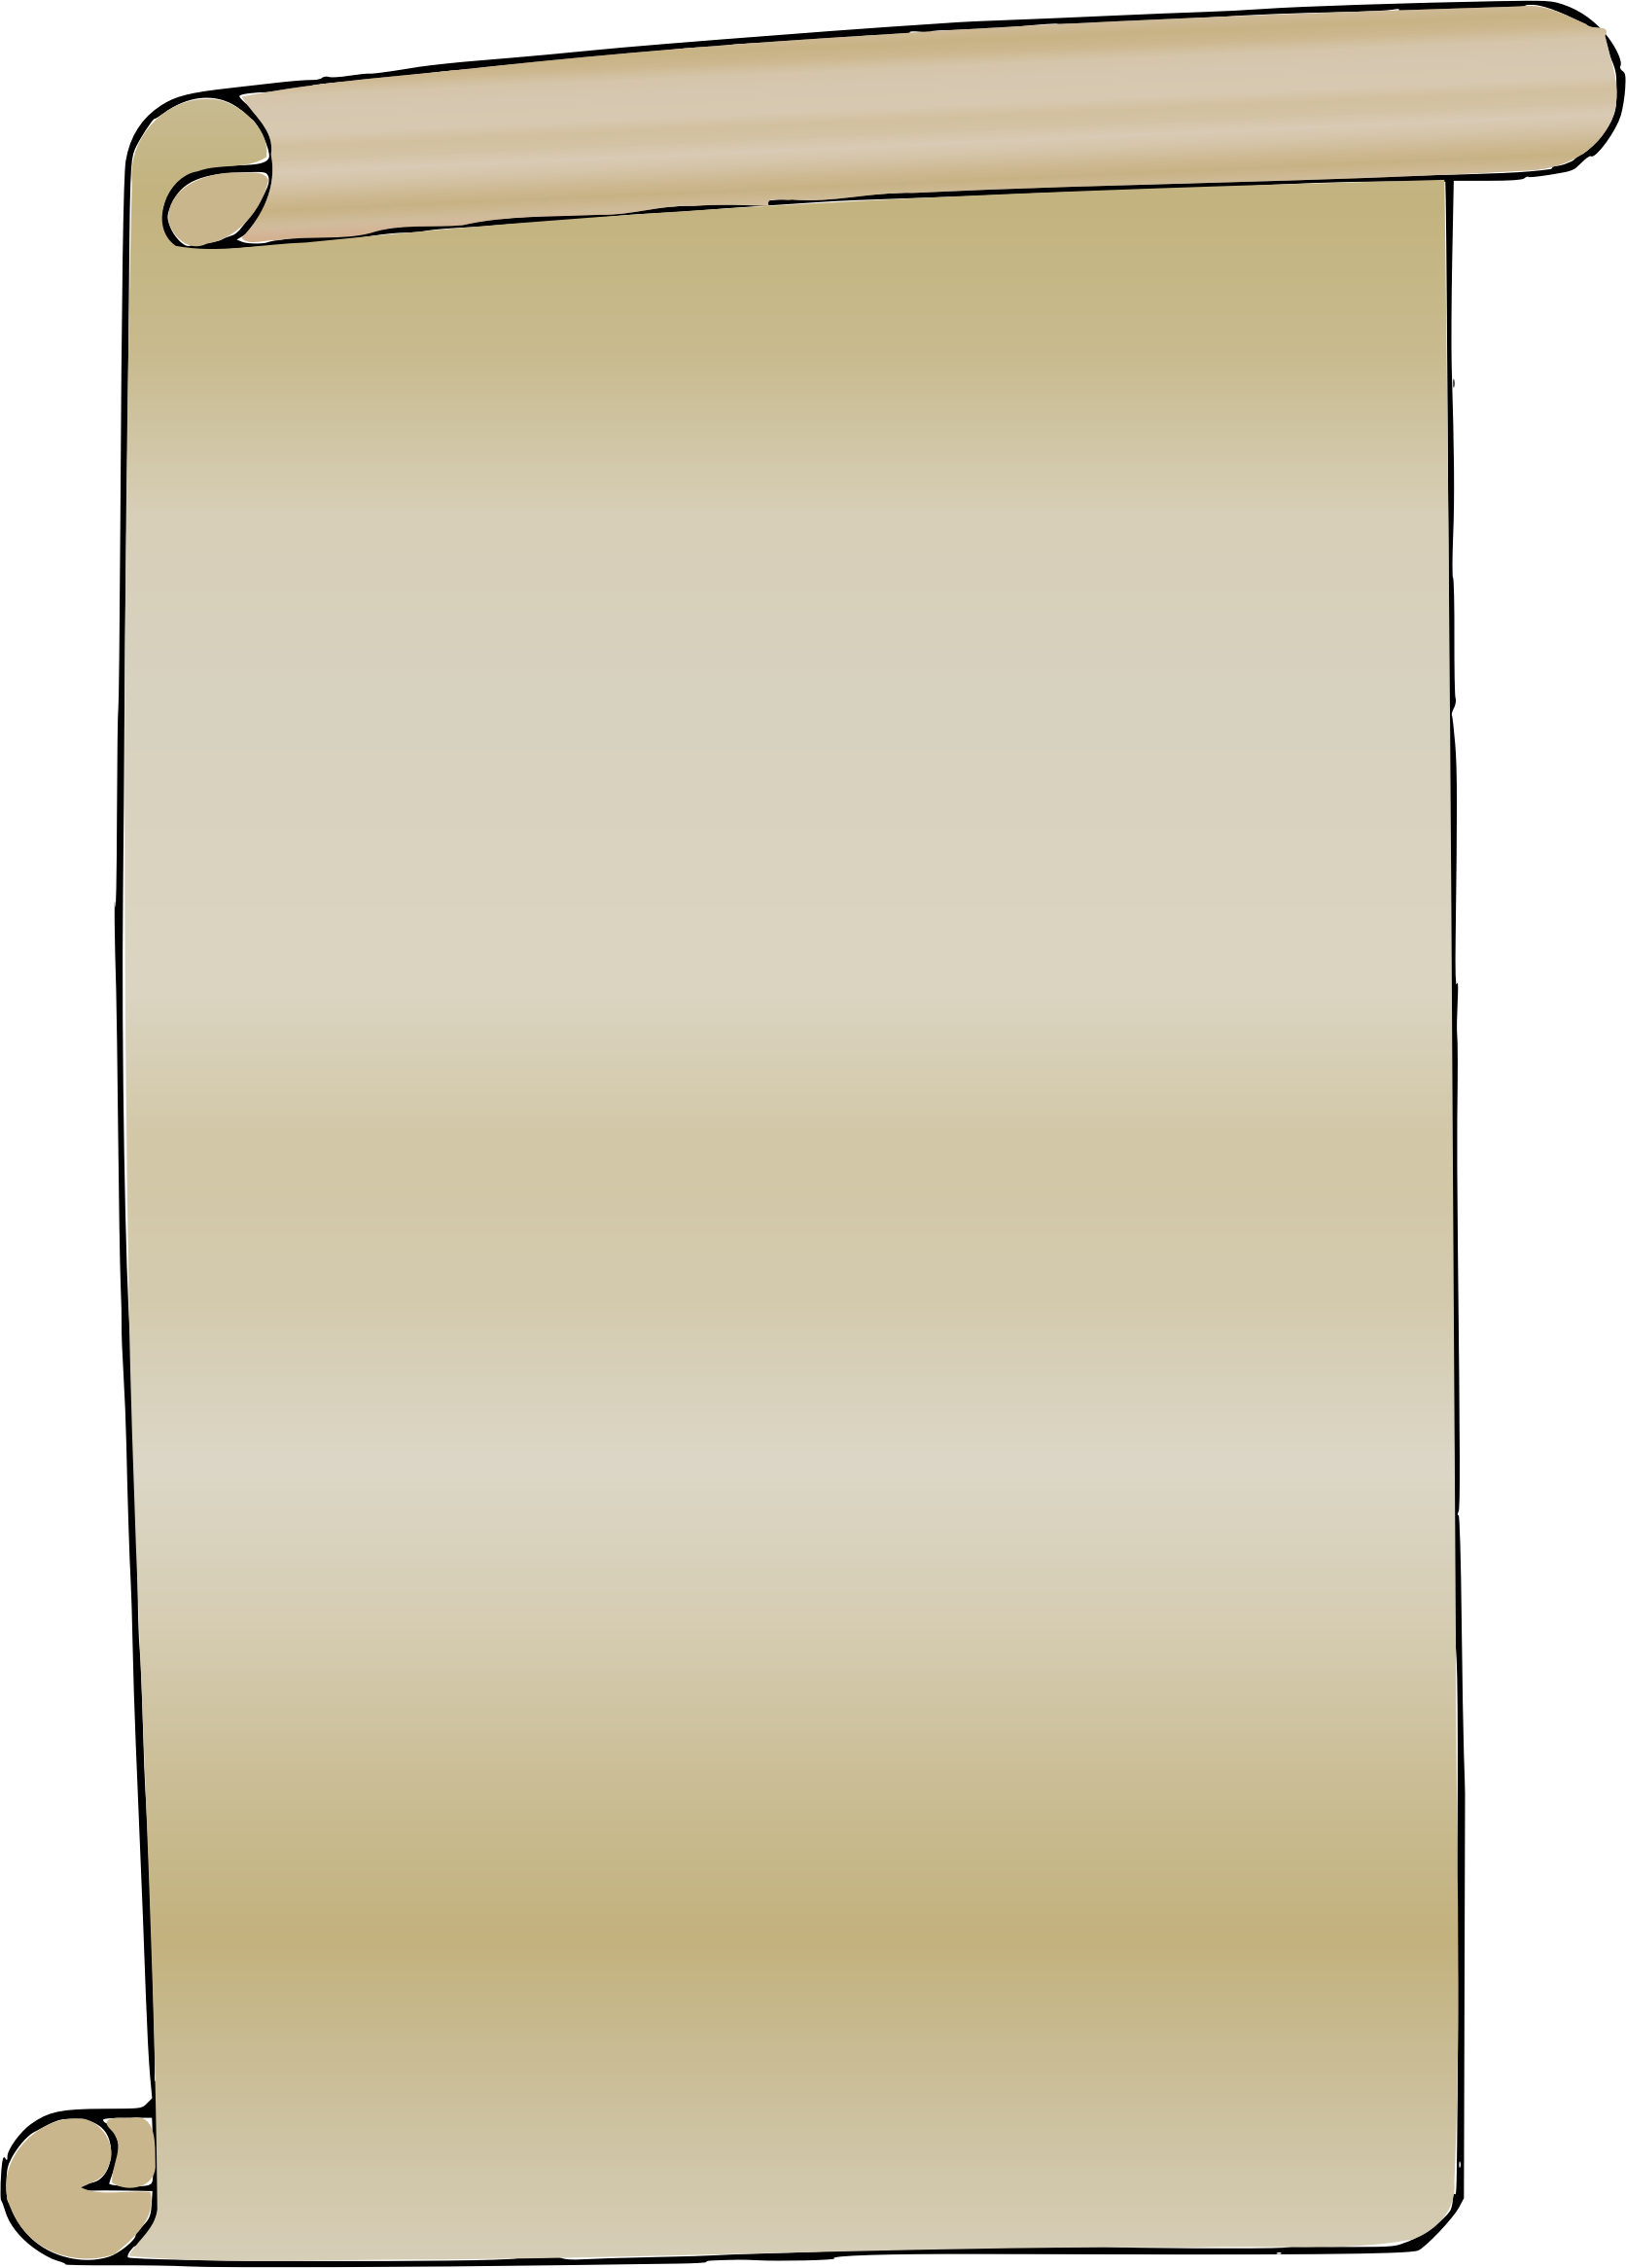 Clipart image id photo. Paper scroll png clip library